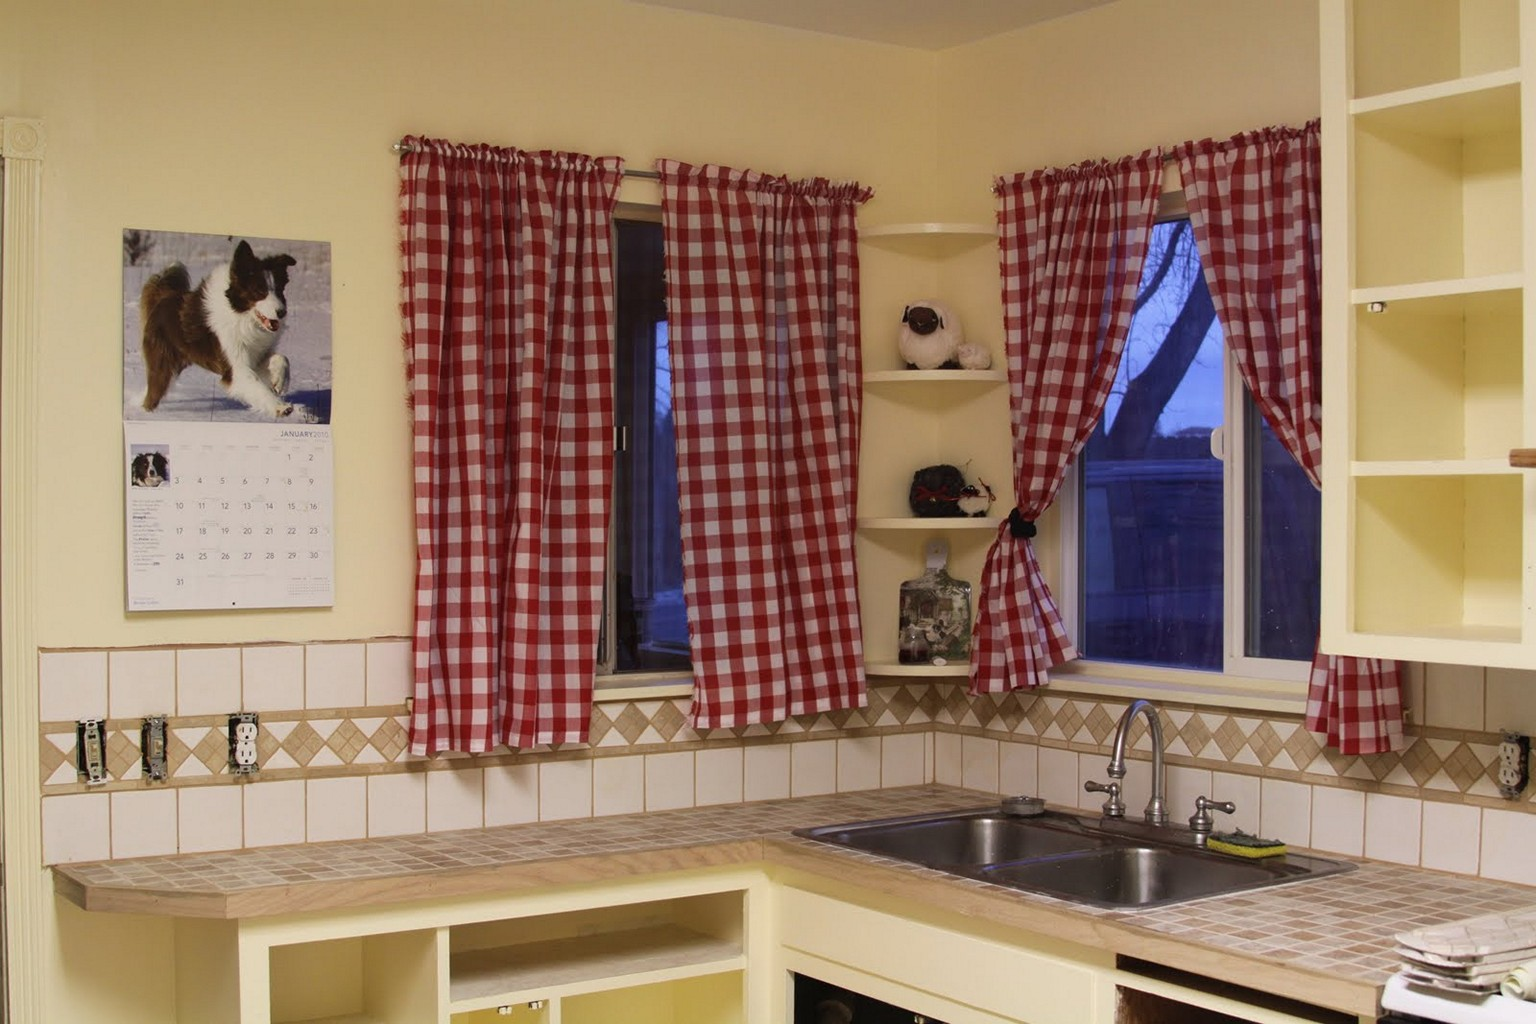 alluring-kitchen-garden-window-ideas-images-of-fresh-on-decor-design-kitchen-garden-window-curtains